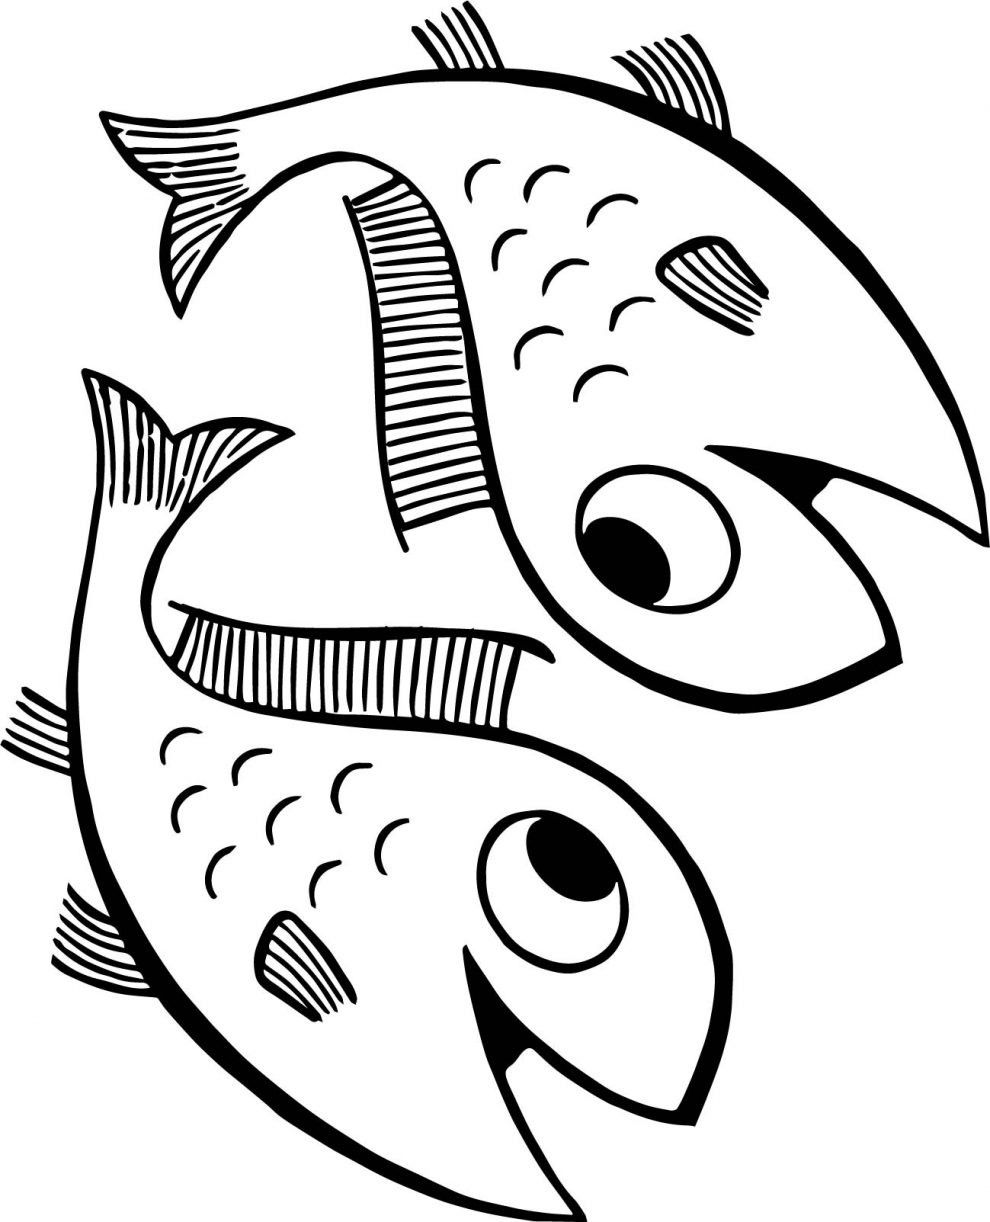 Pin by Elizabeth Hanchey on Summer :) | Fish coloring page ... |Summer Coloring Sheets Fish